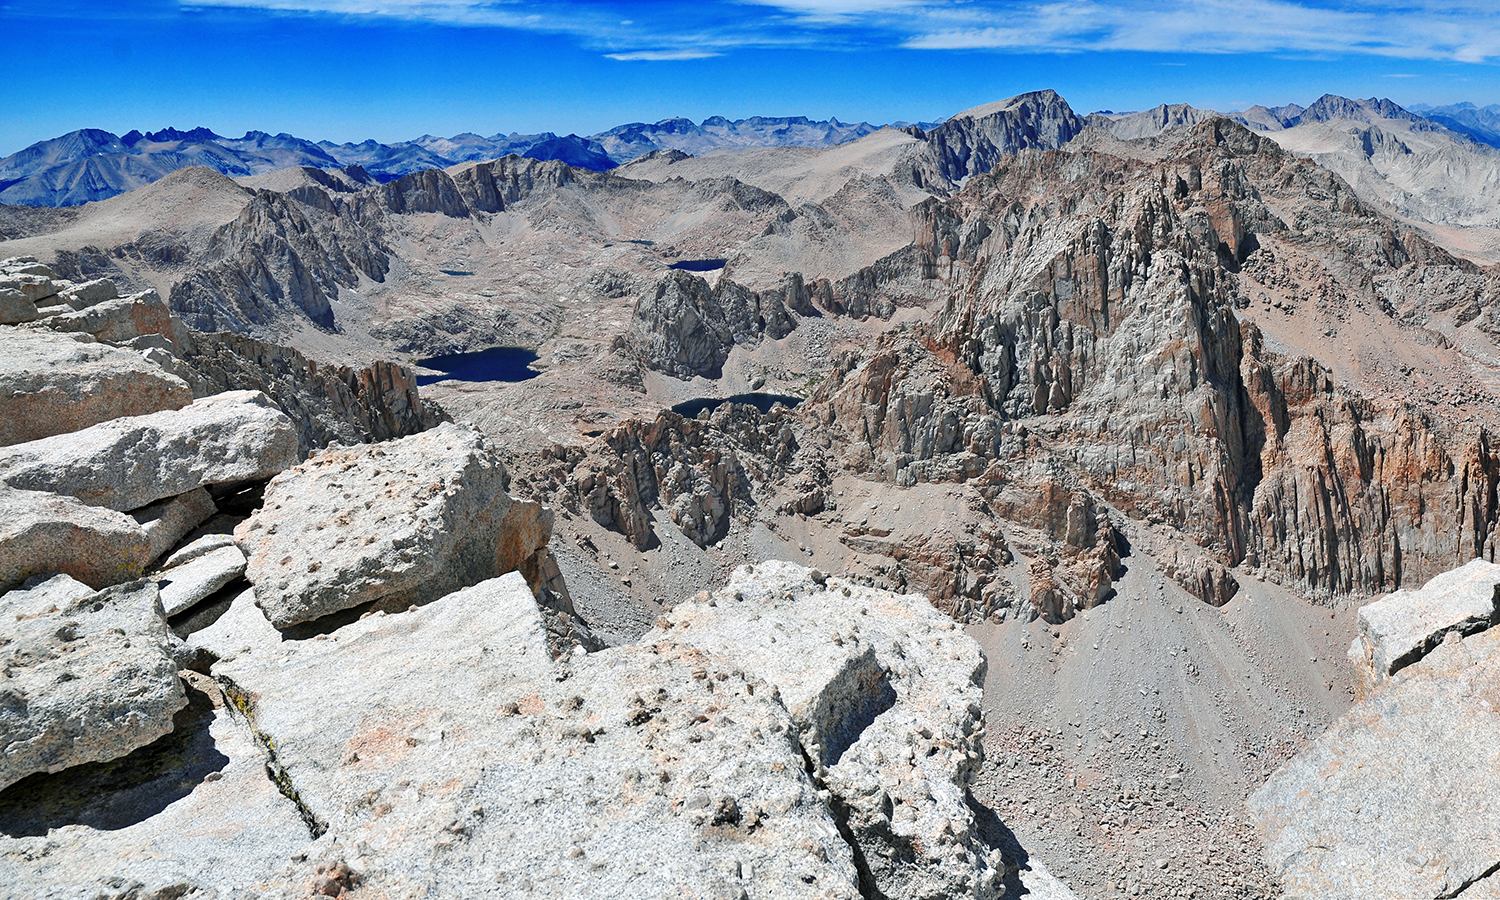 Image from the top of Mount Whitney